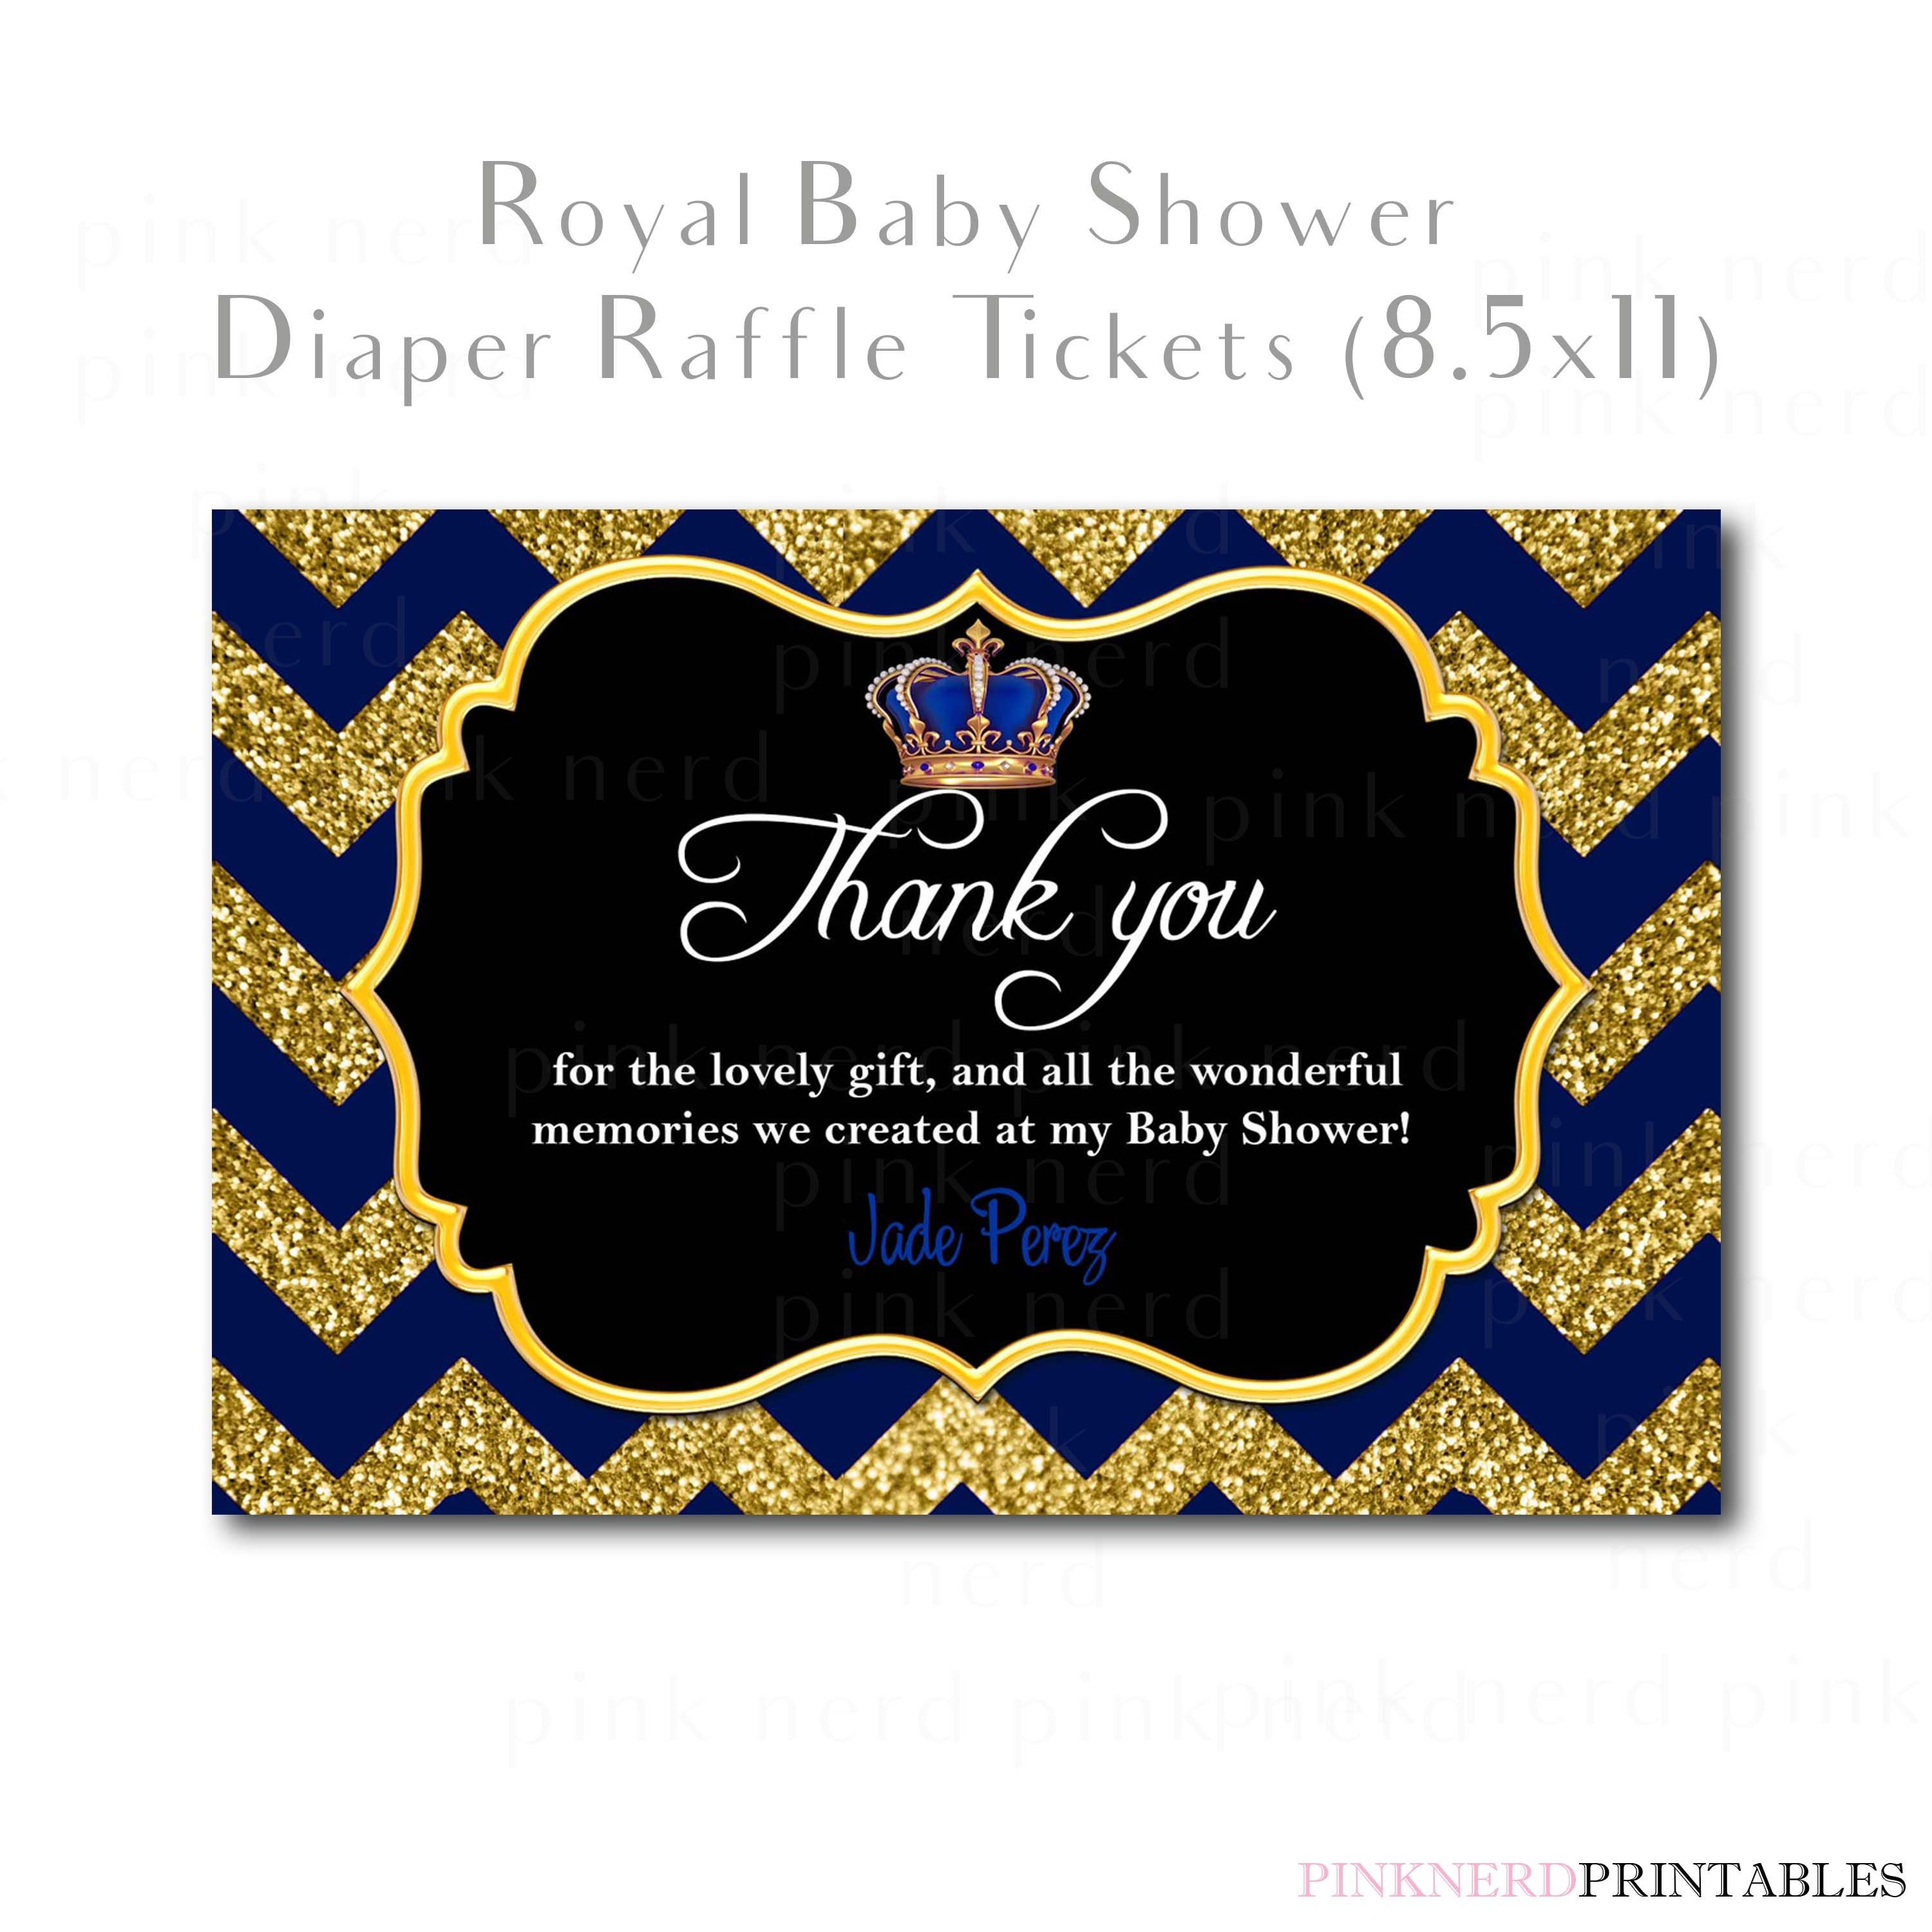 Cheap Baby Shower Invitations, Cheap Wedding Invitations,Cheap Birthday  Invitations ,Cheap Bridal Shower Invitations, Affordable Invitations ,Cheap  ...